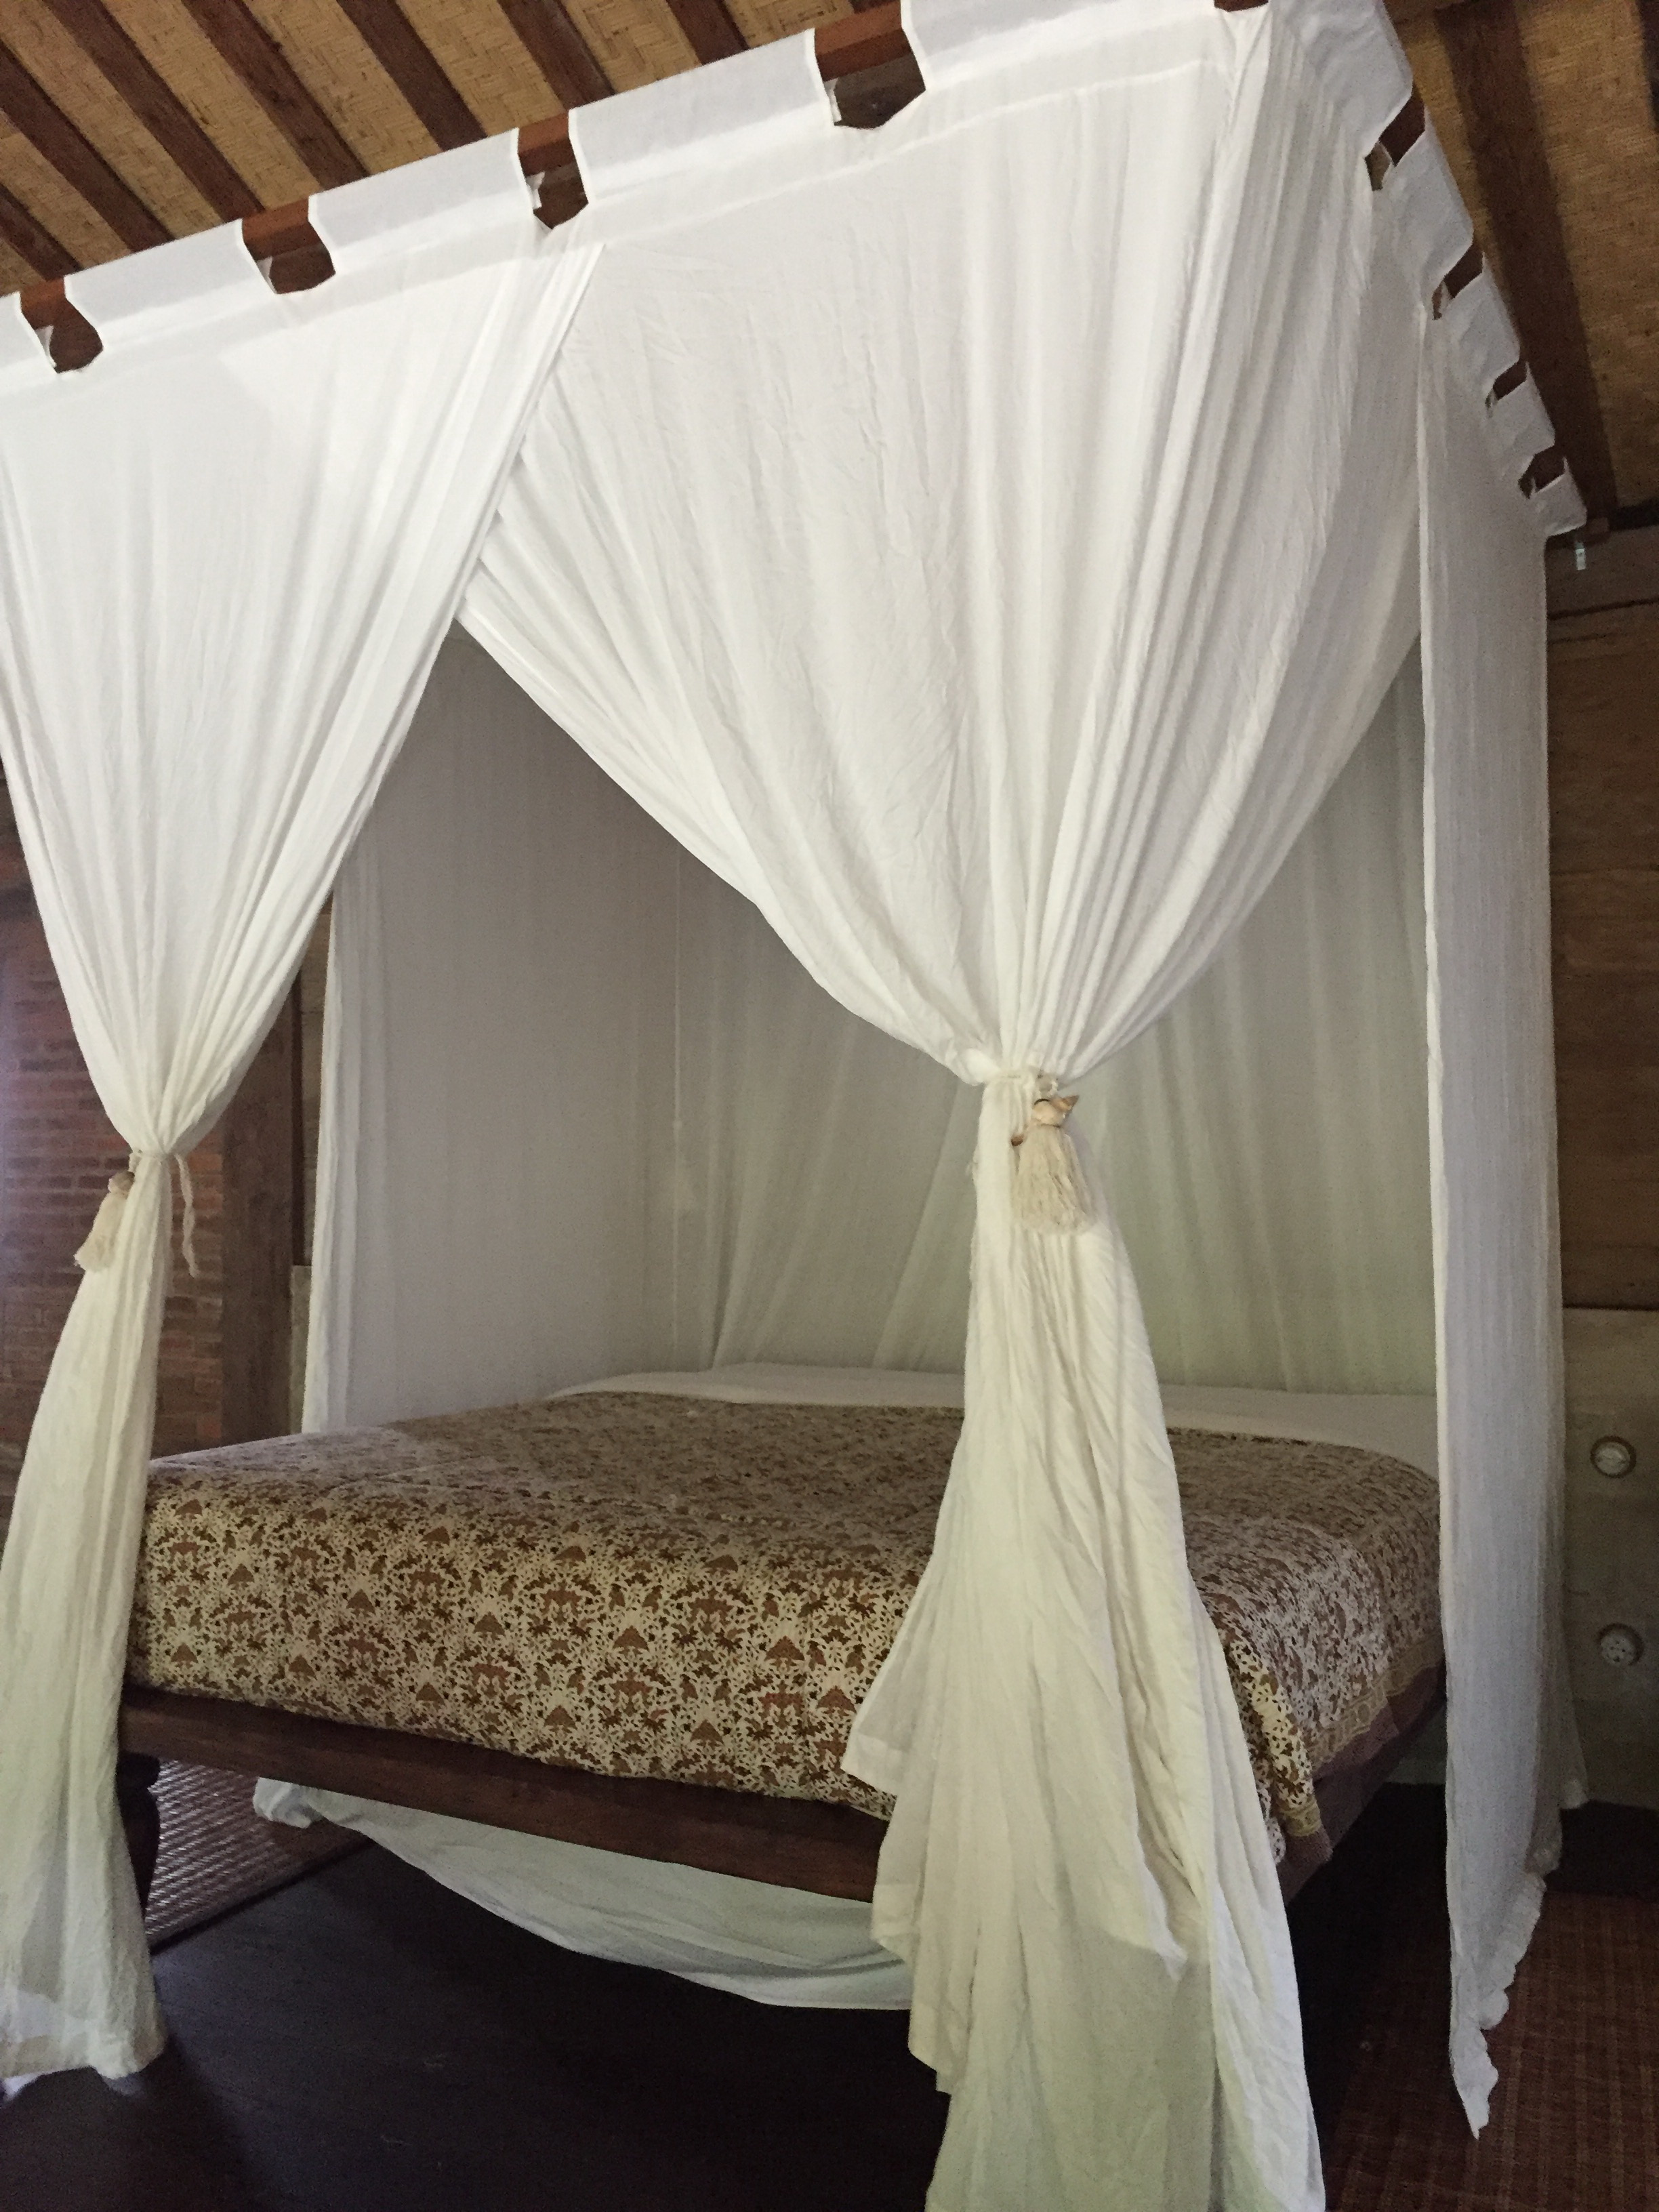 Sale! Home / RECTANGULAR MOSQUITO NET